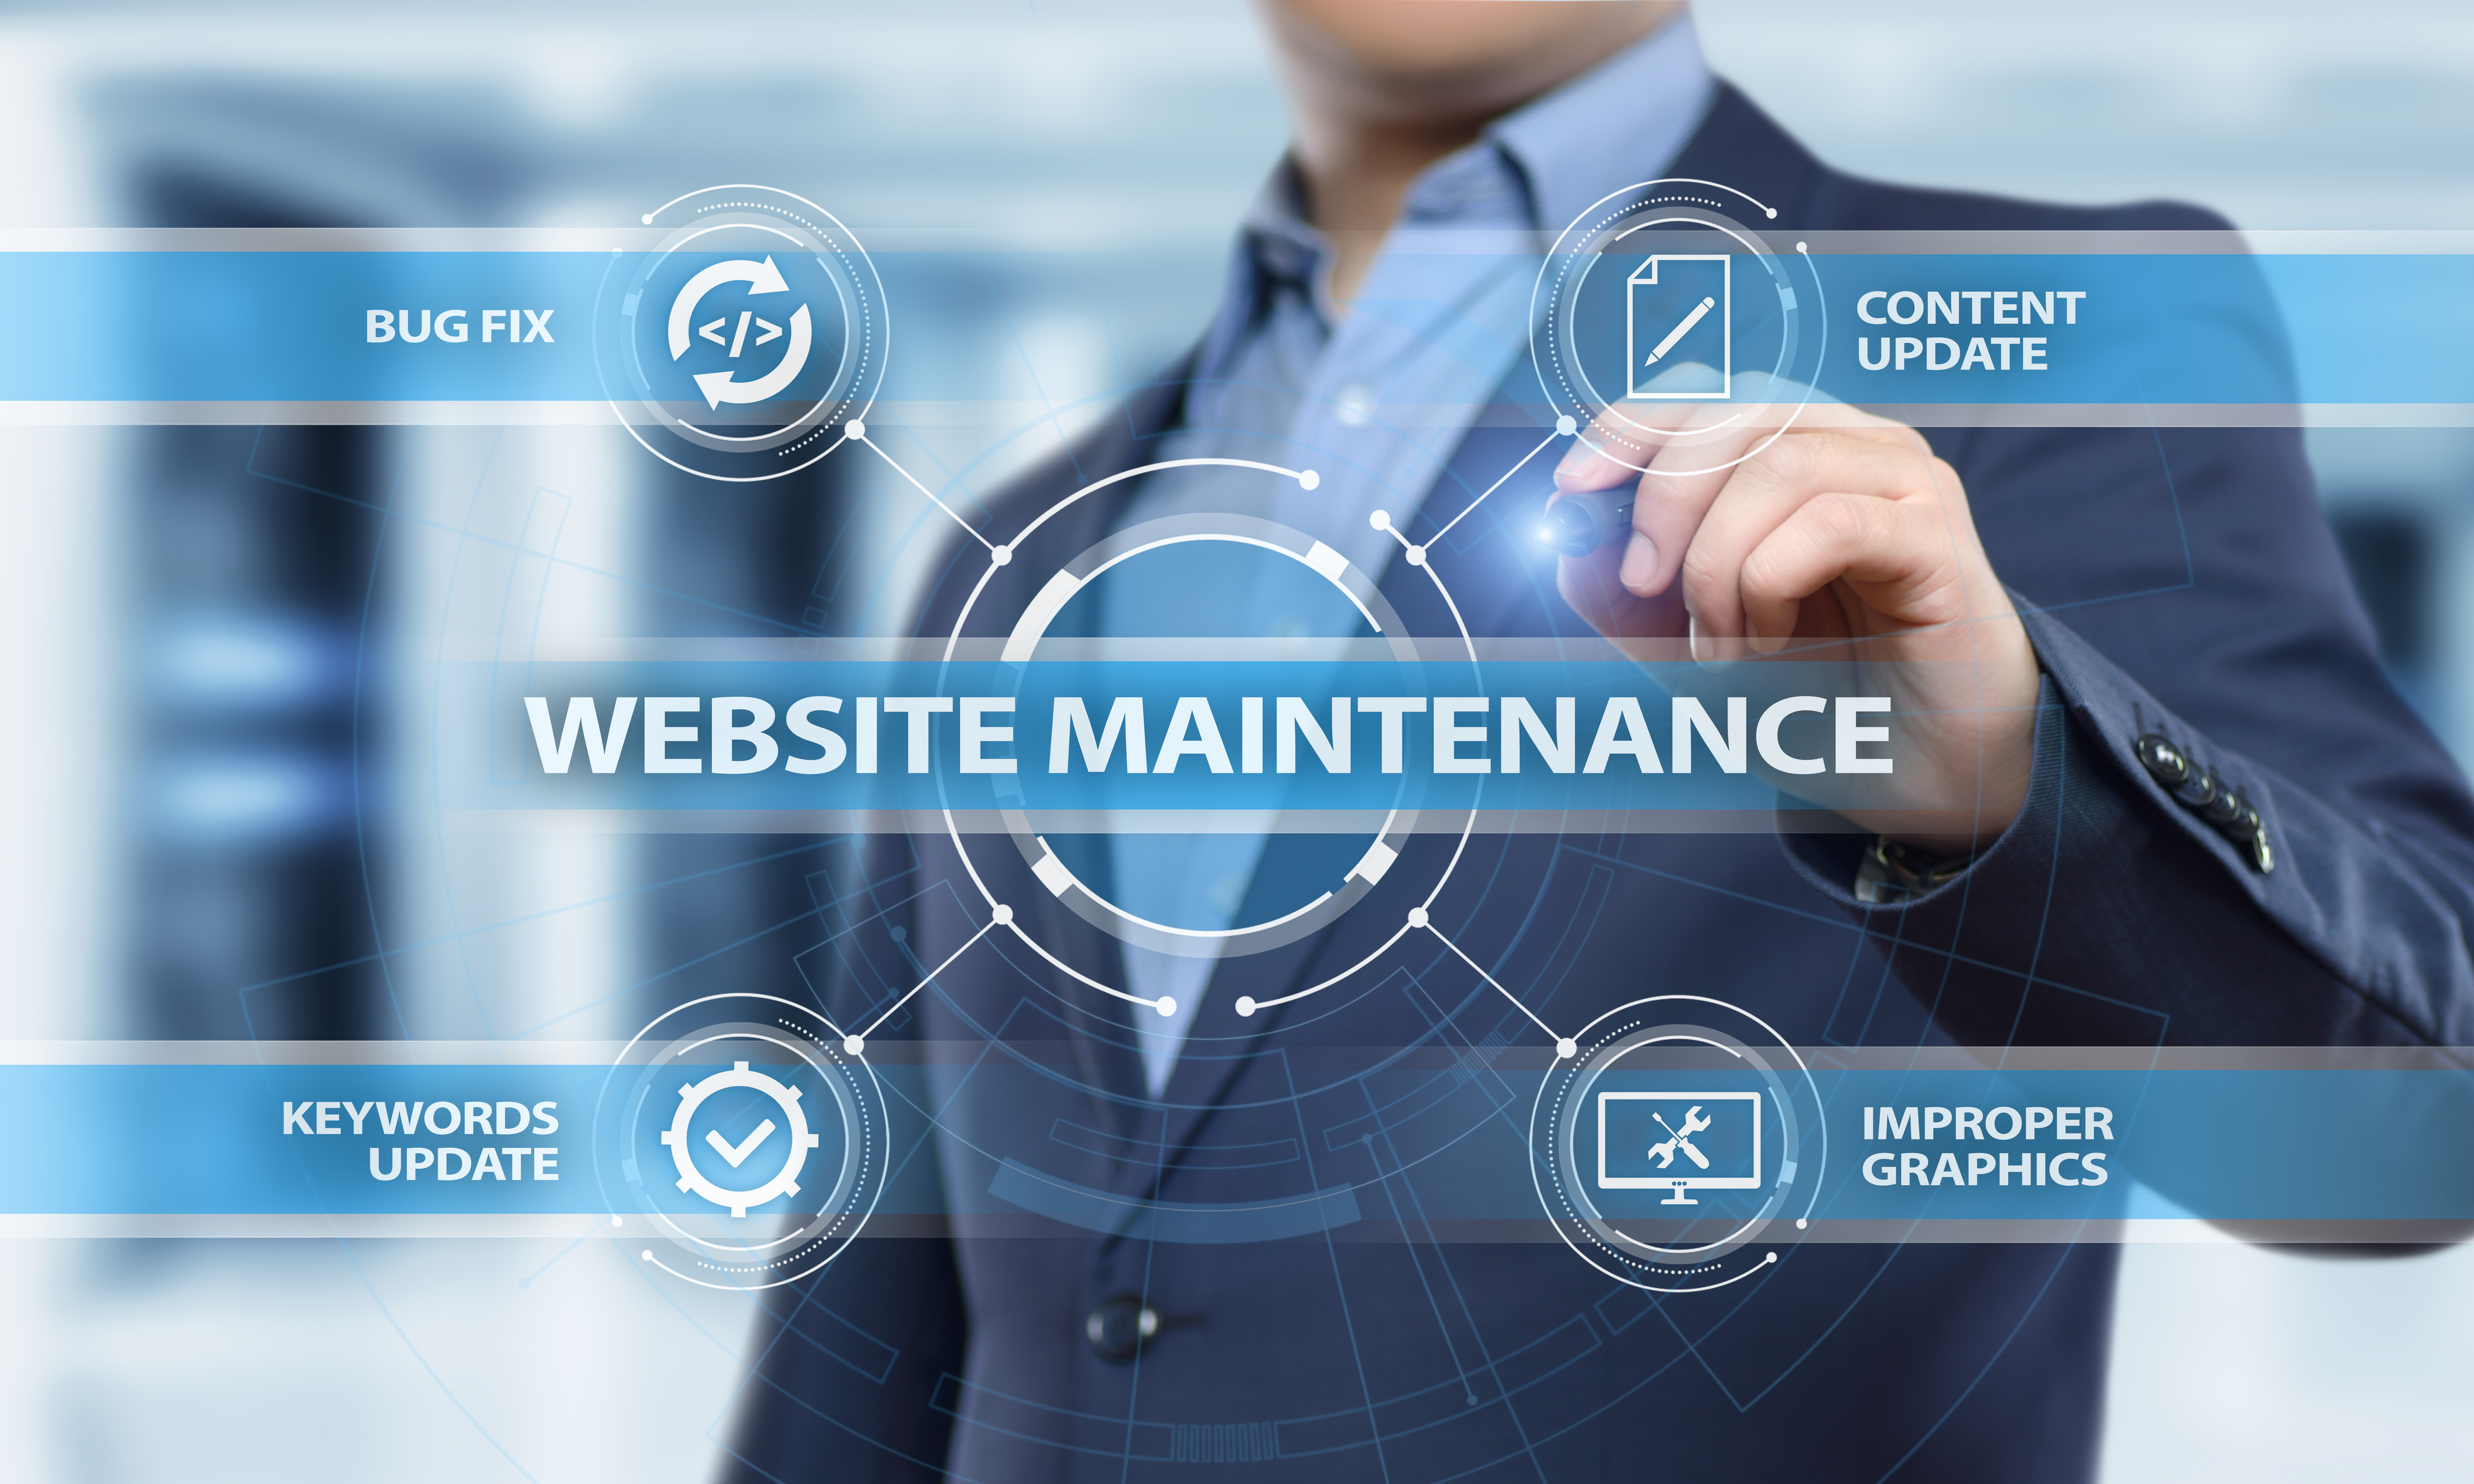 Website Maintenance is being performed!